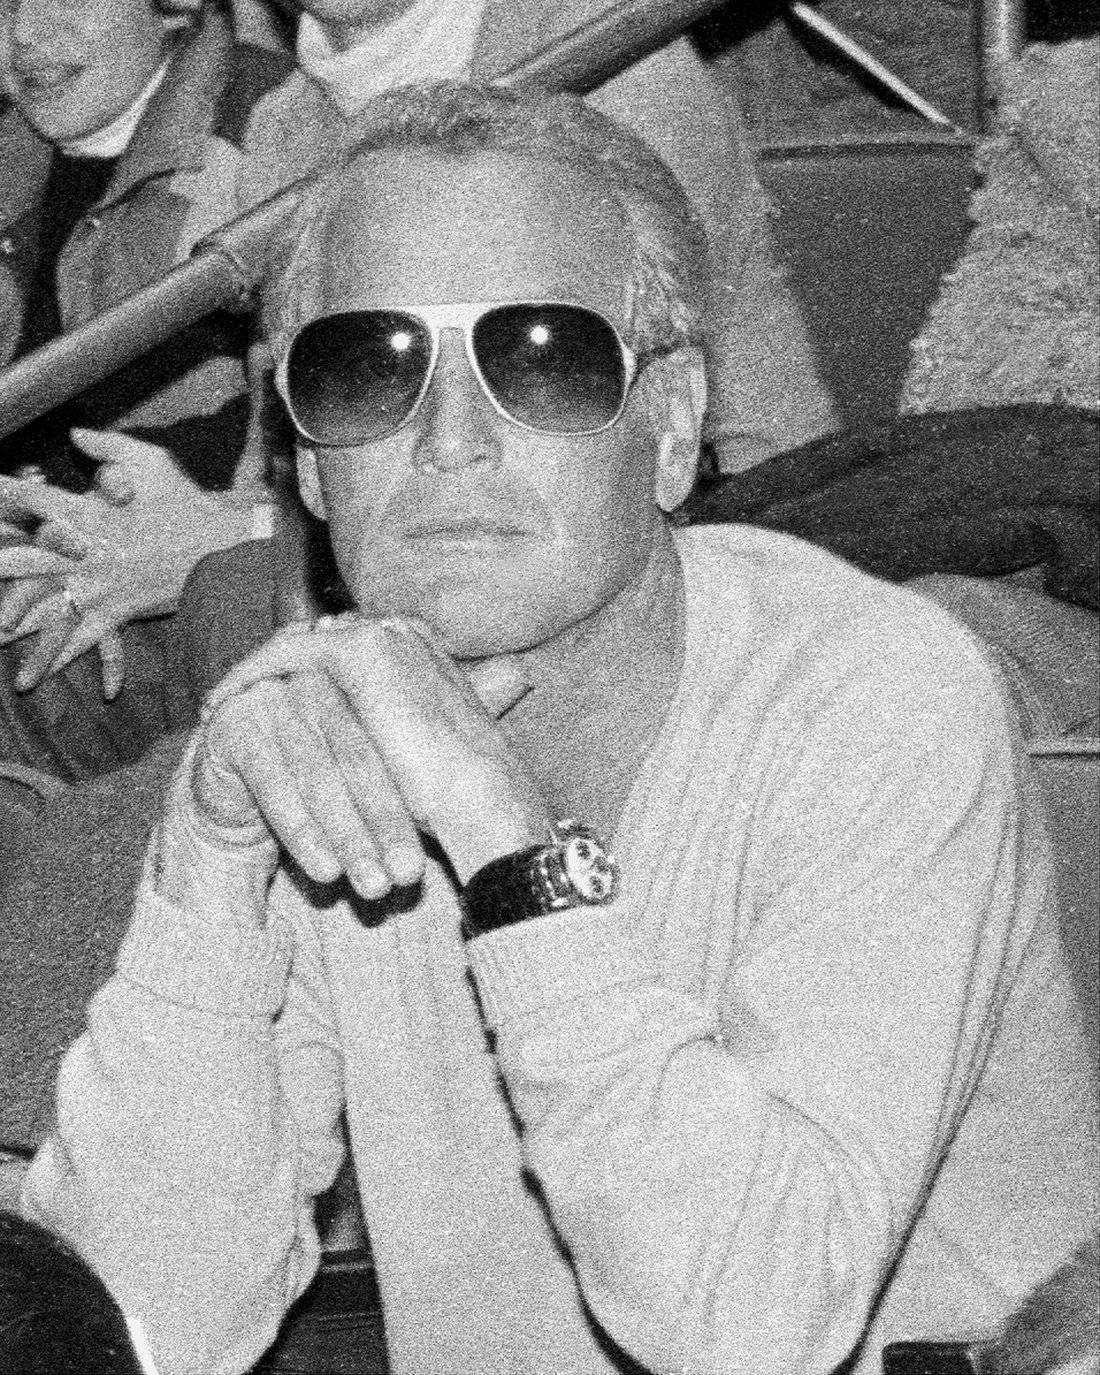 Actor Paul Newman sporting a Rolex watch.